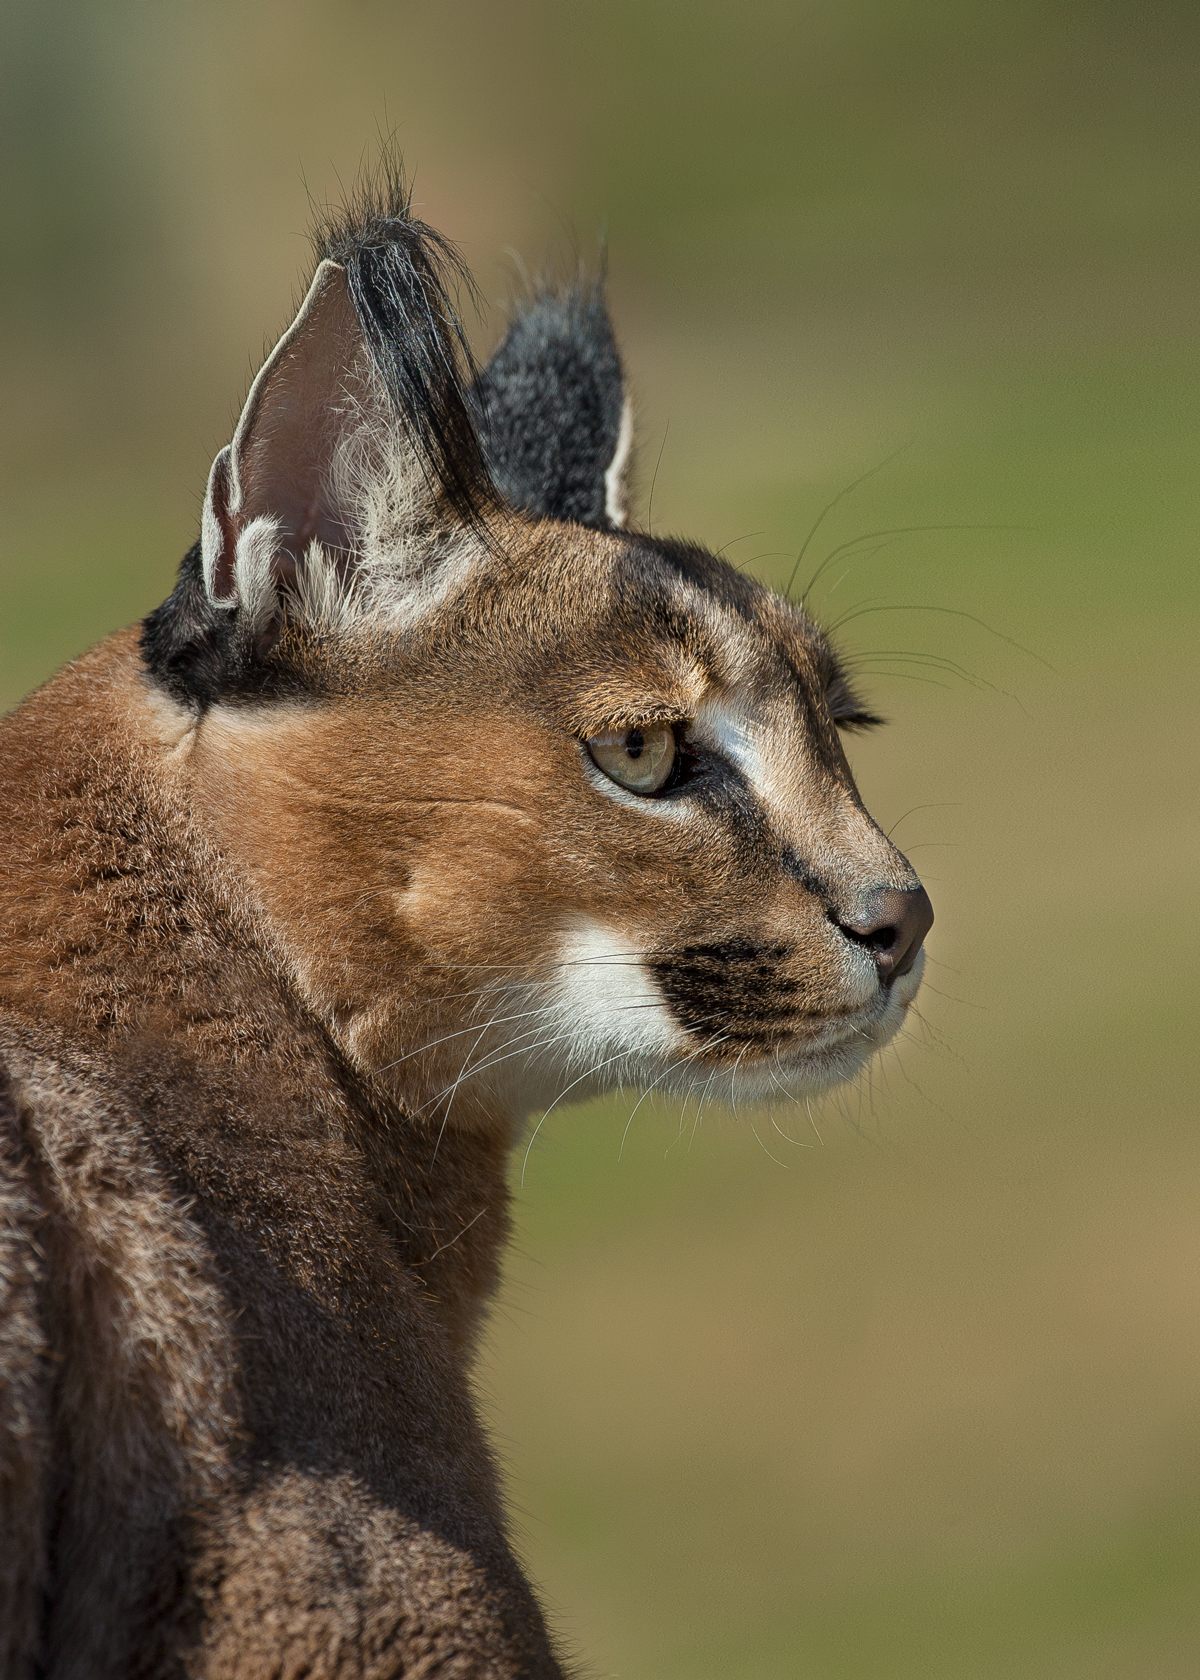 The most noticeable feature of a caracal is its black ear tufts, or tassels. Although many theories speculate their function, the most widely accepted theory is that the cat twitches its tufts to communicate with other caracals.